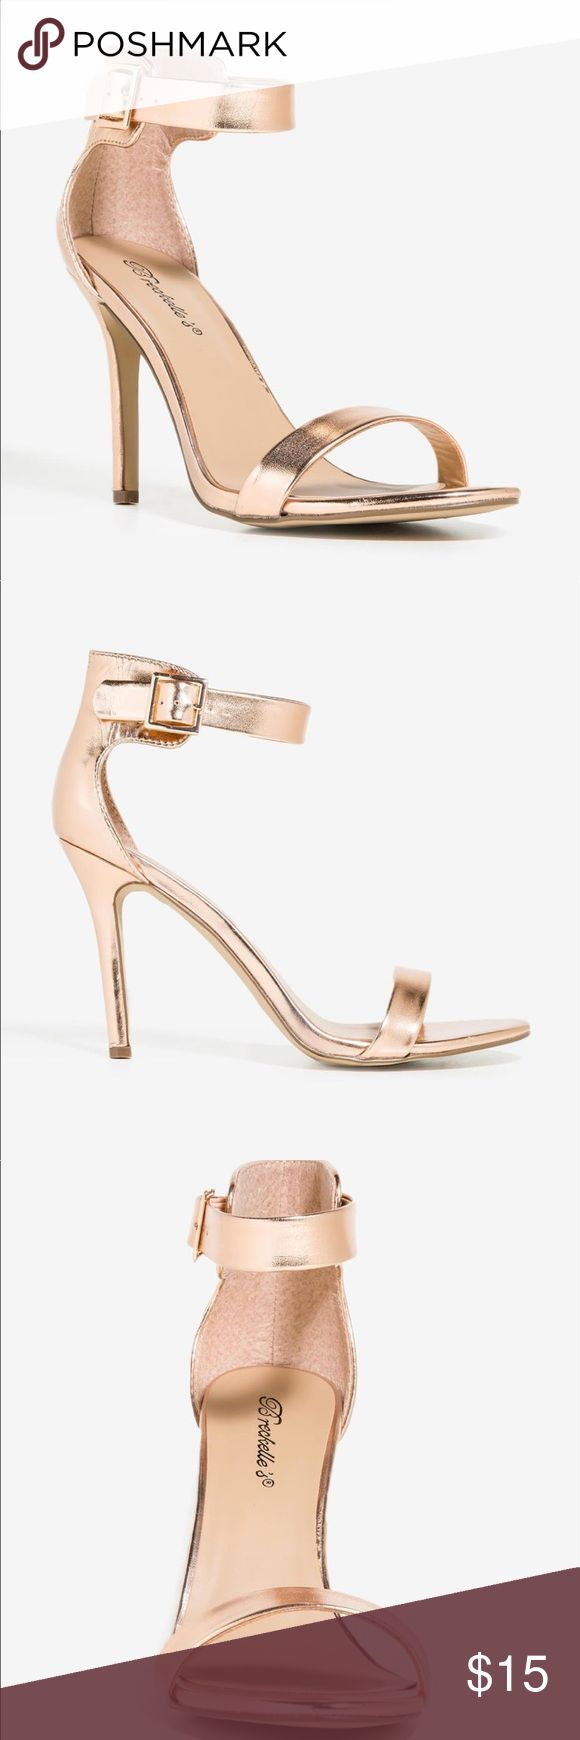 Rose Gold Heels Metallic Rose gold open toe heel with buckle on ankle strap. *Band New* *Never Worn* a'gaci Shoes Heels